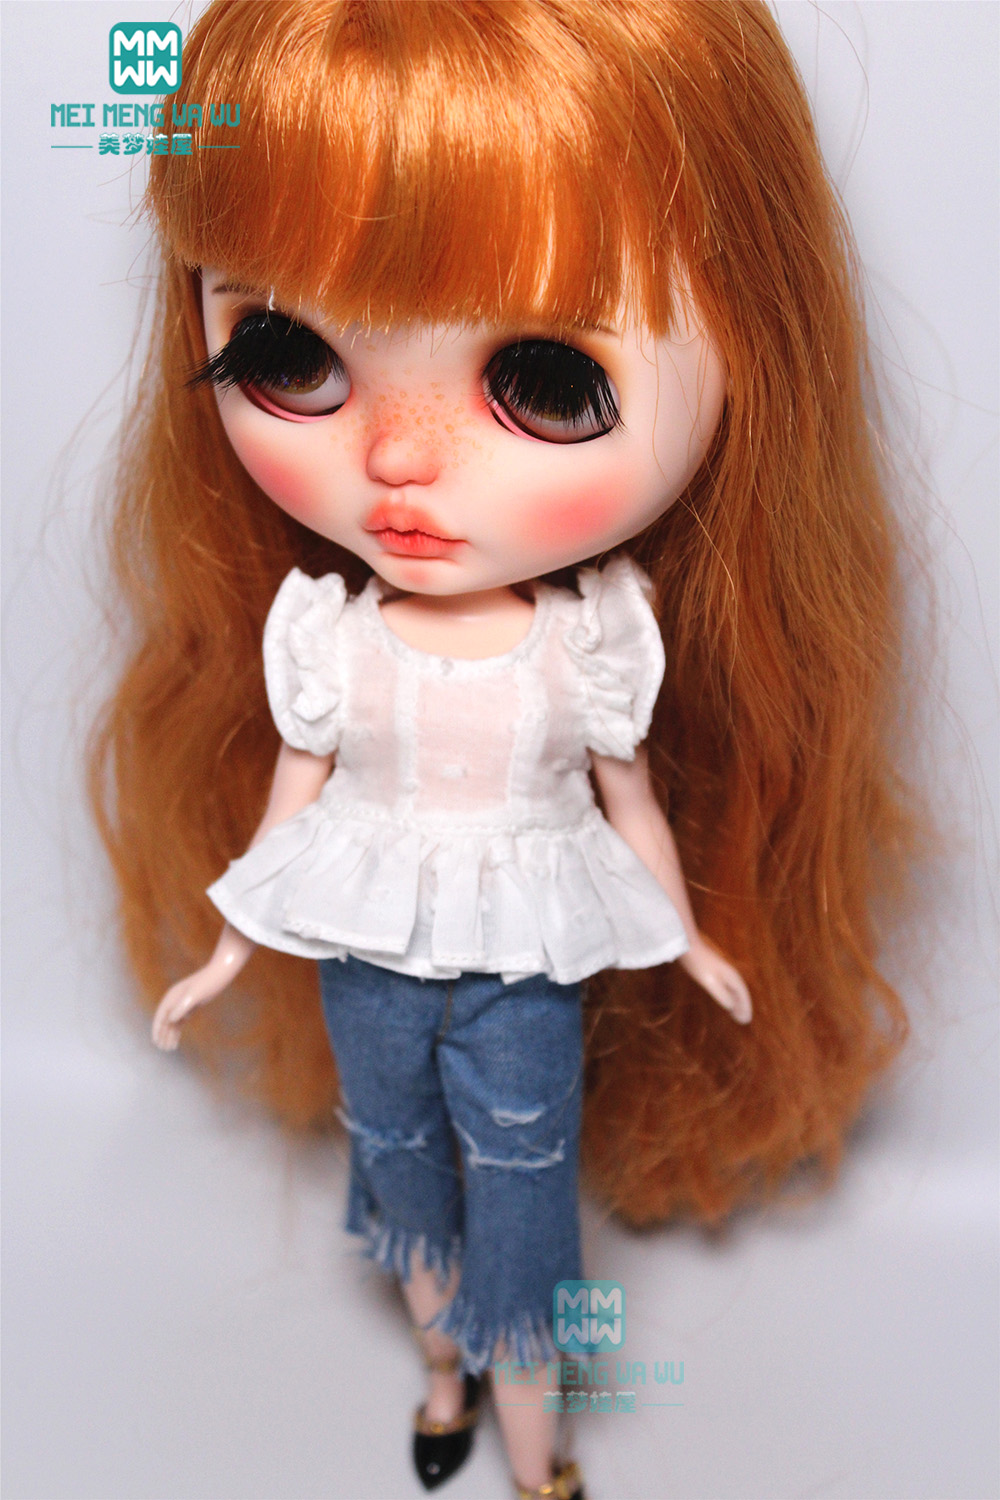 1PCS Blyth Accessories Fashion White Shirt, Shredded Jeans For Blyth Azone 1/6 Doll Accessories